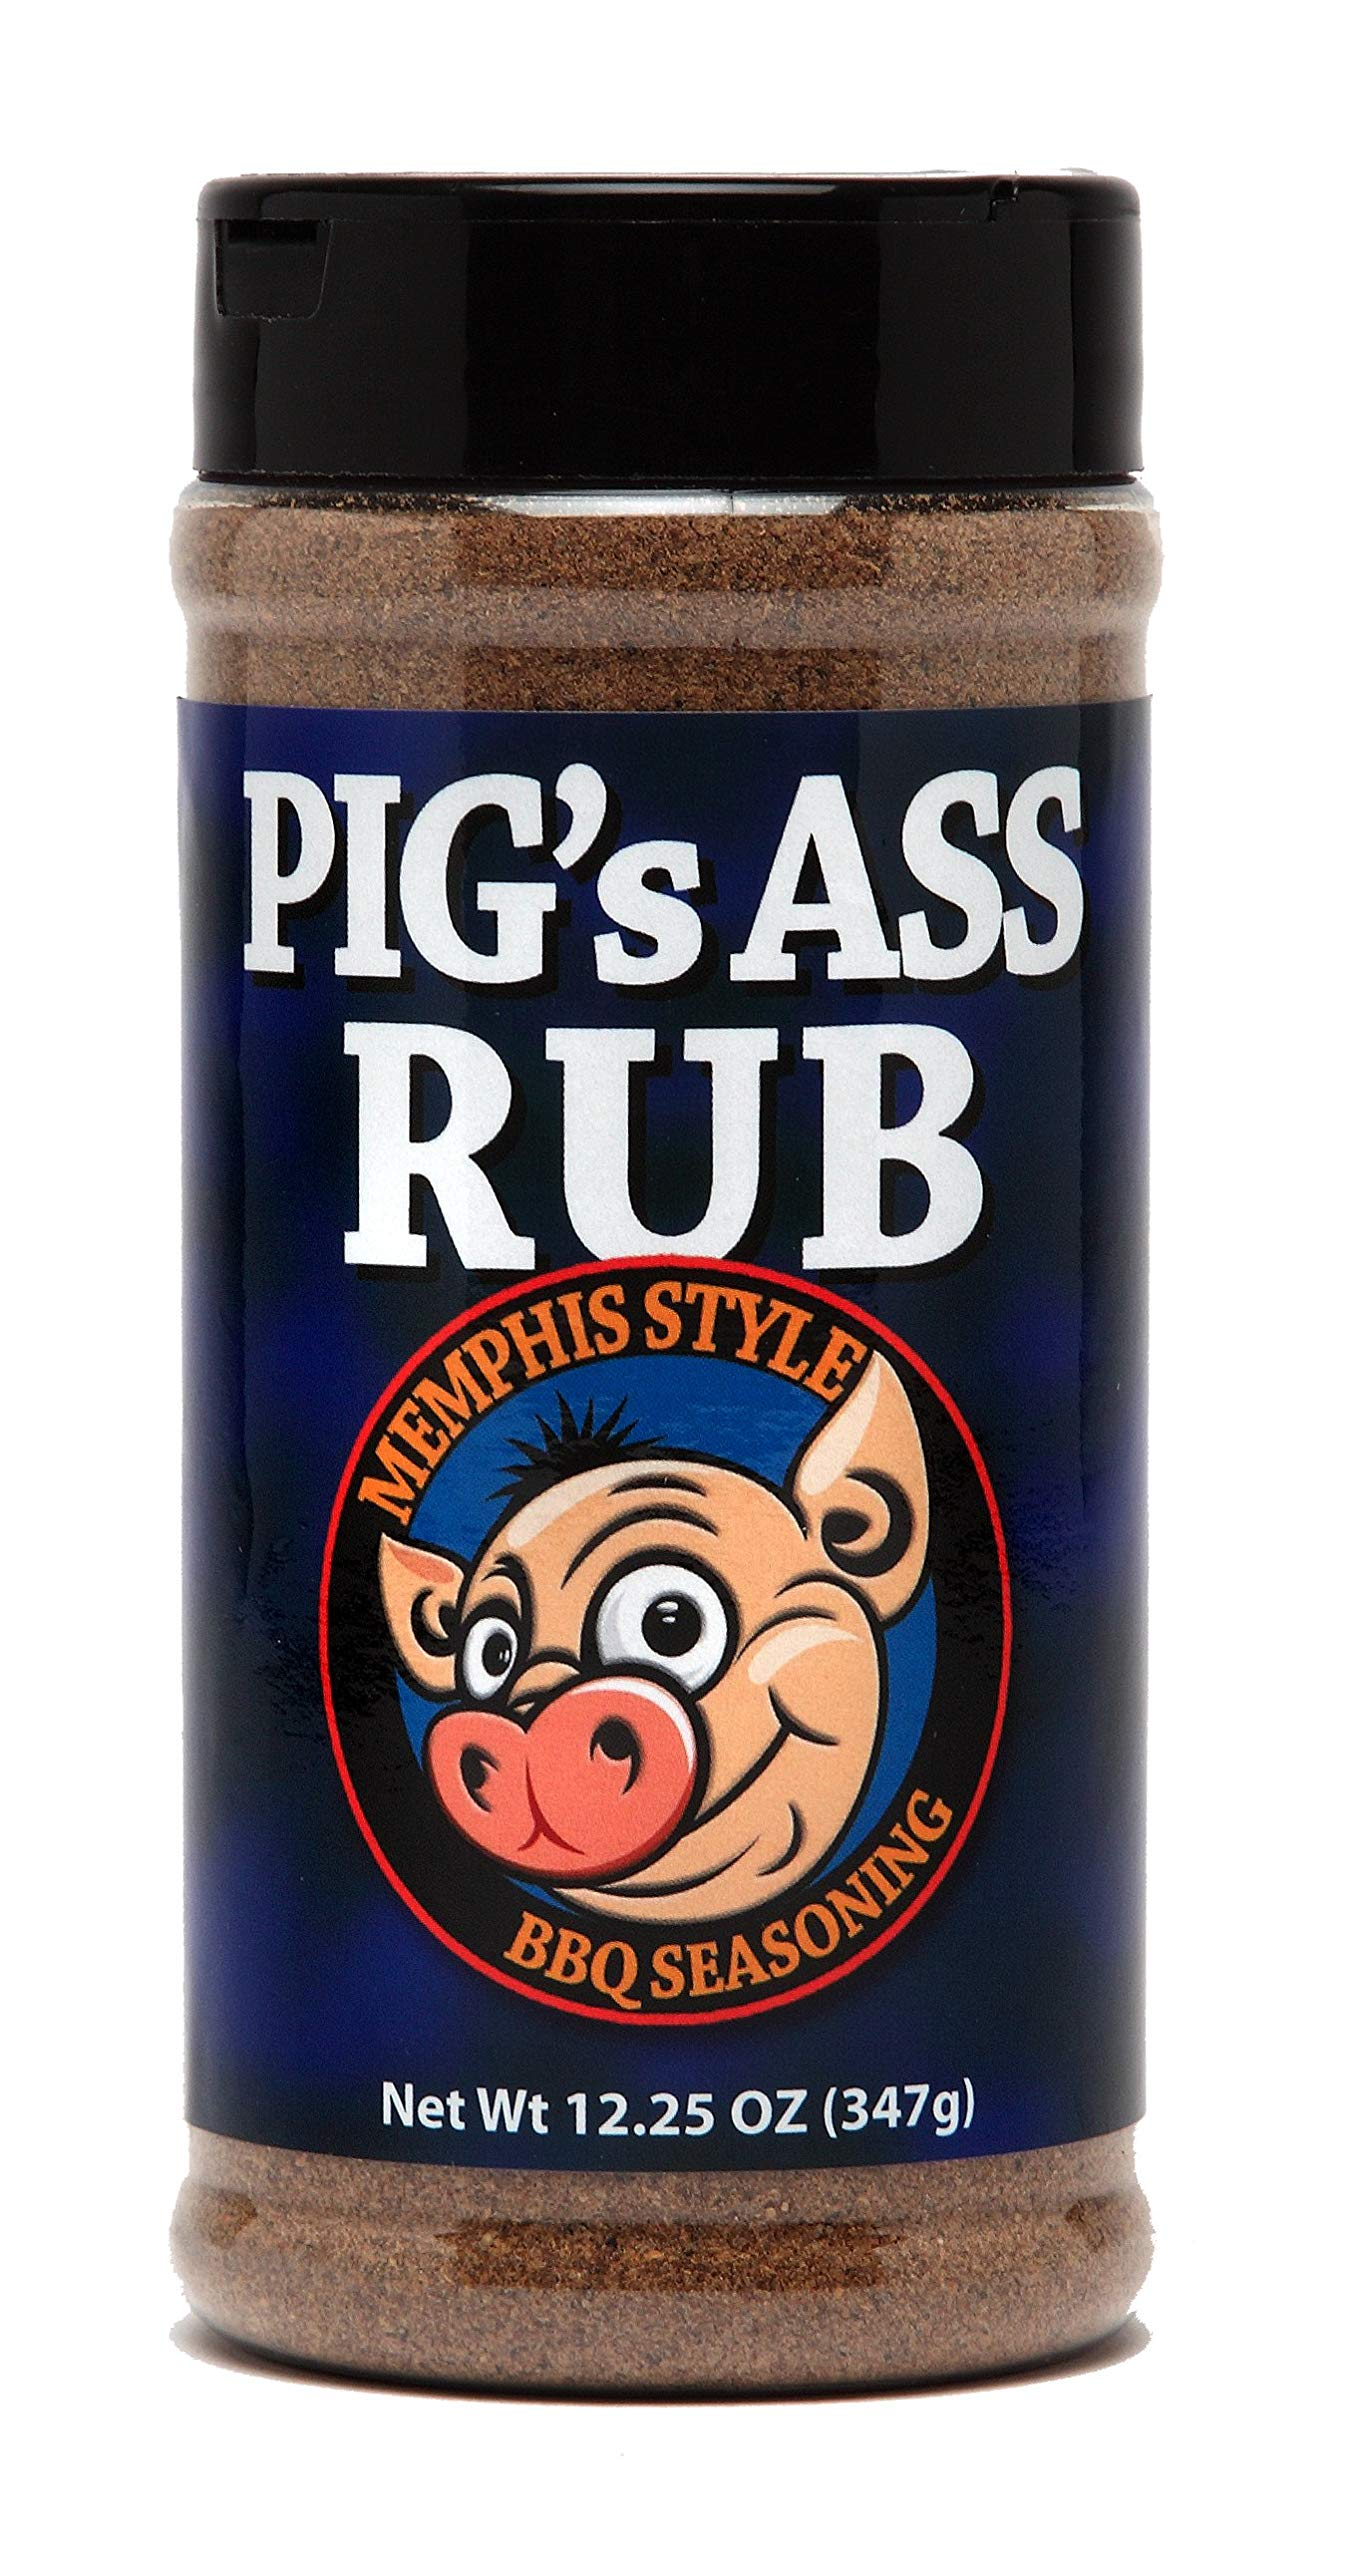 Amazon.com : Pig's Ass Rub Memphis Style BBQ Seasoning 12.25oz Bottle :  Grocery & Gourmet Food